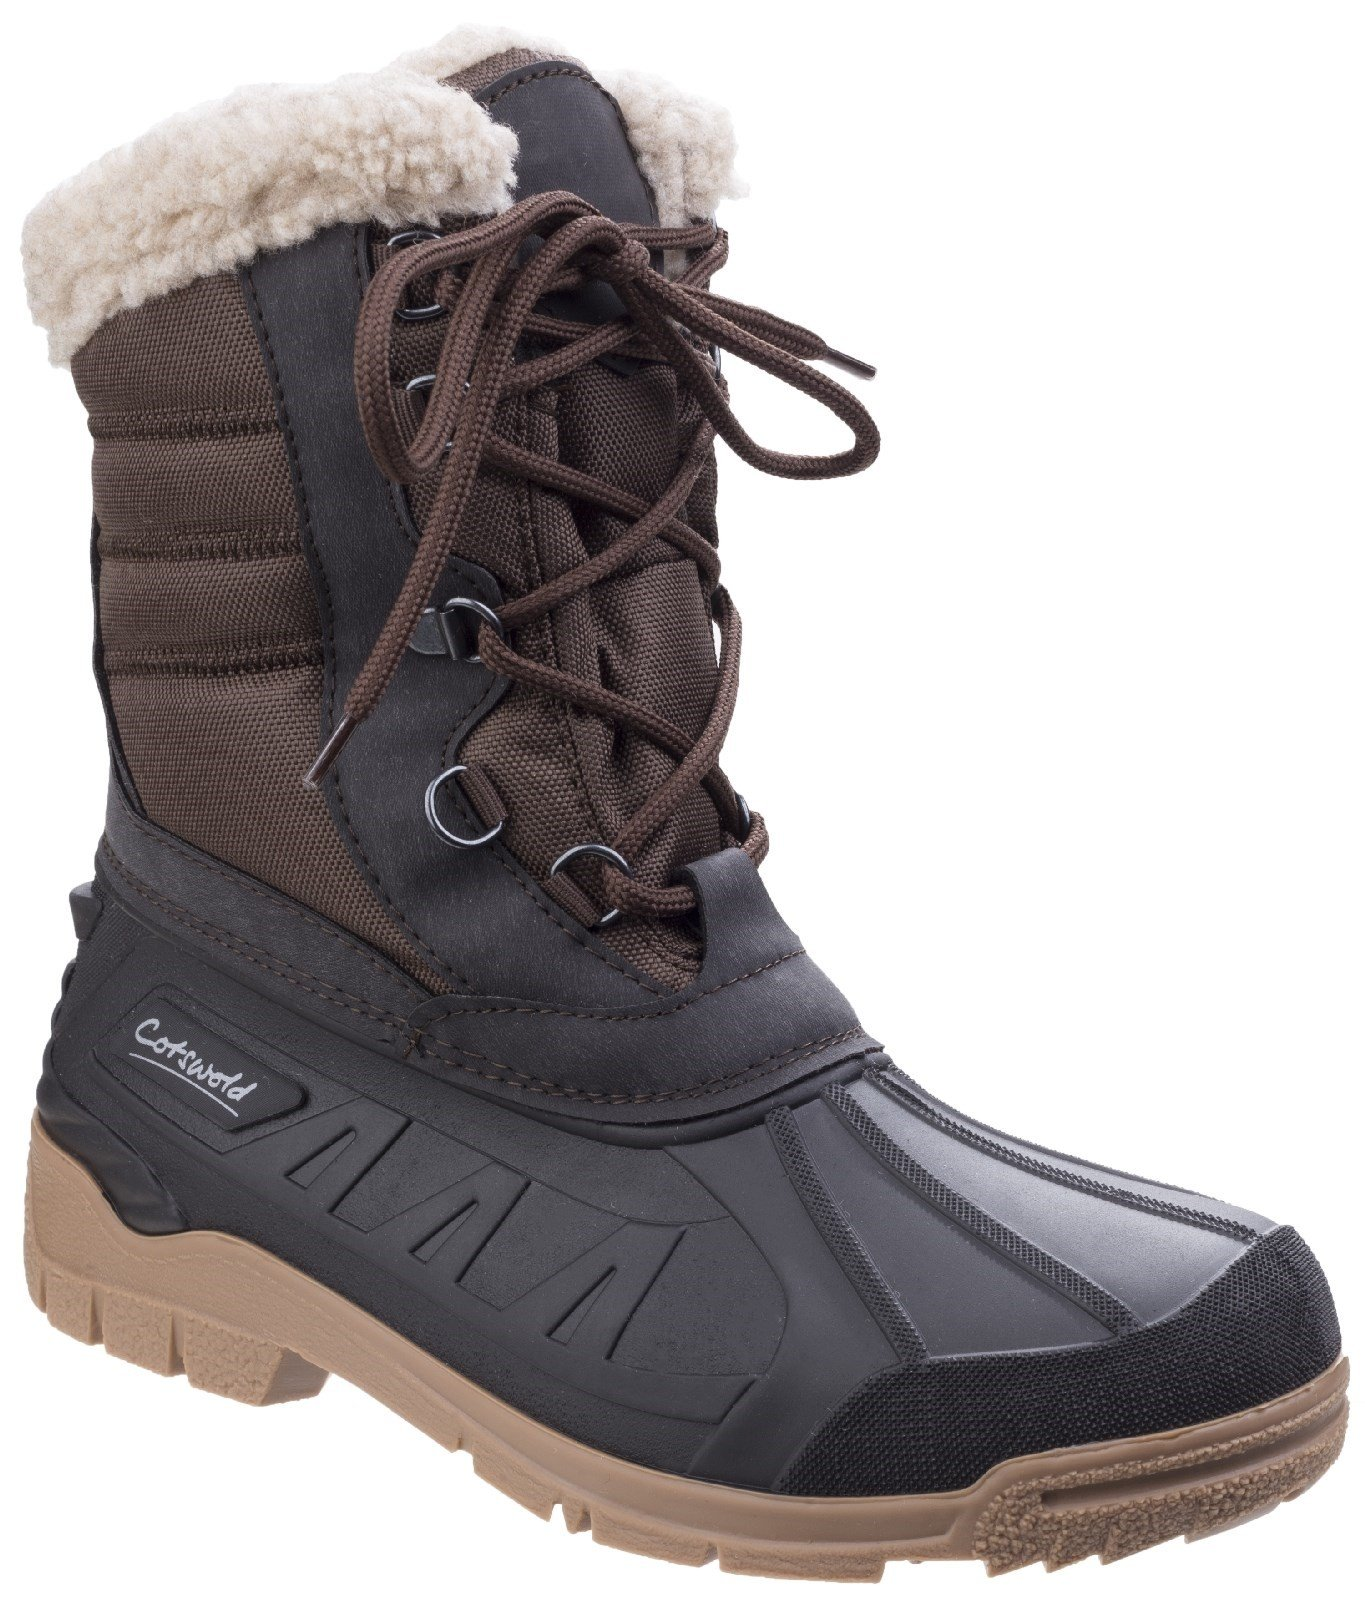 Cotswold Women's Coset Weather Boot Brown 25538 - Brown 3